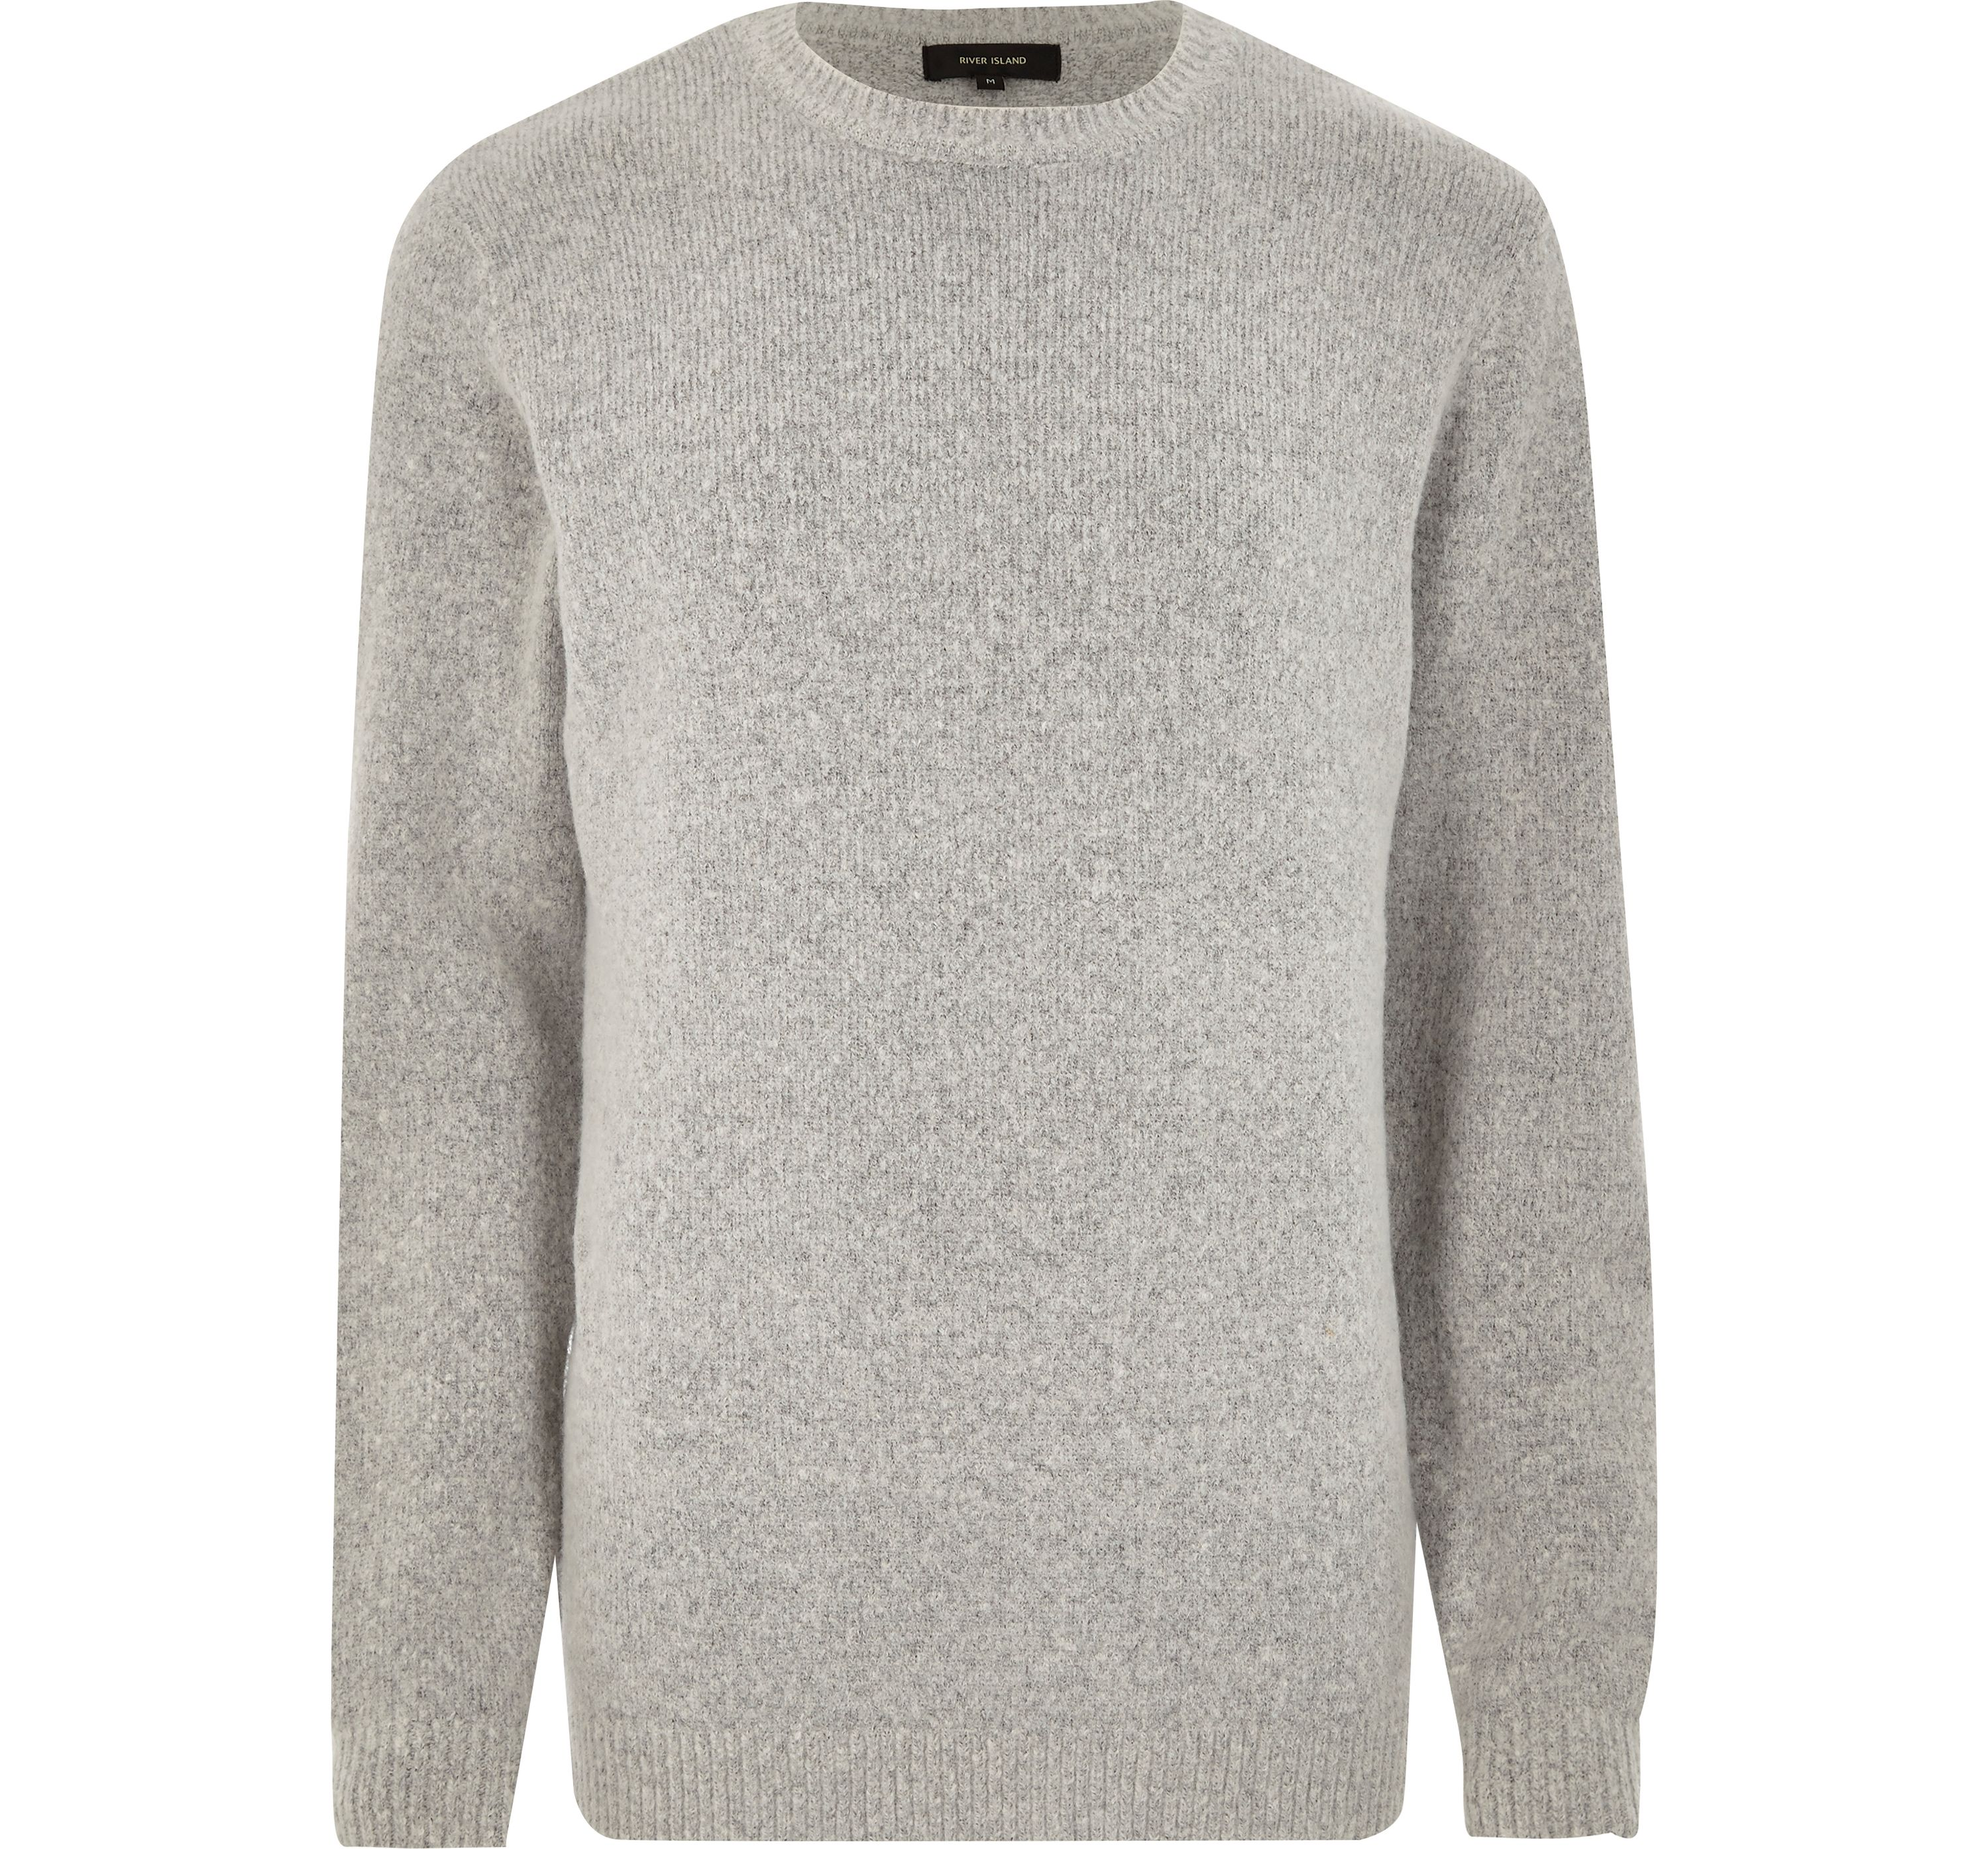 River Island Mens Grey soft crew neck knit jumper